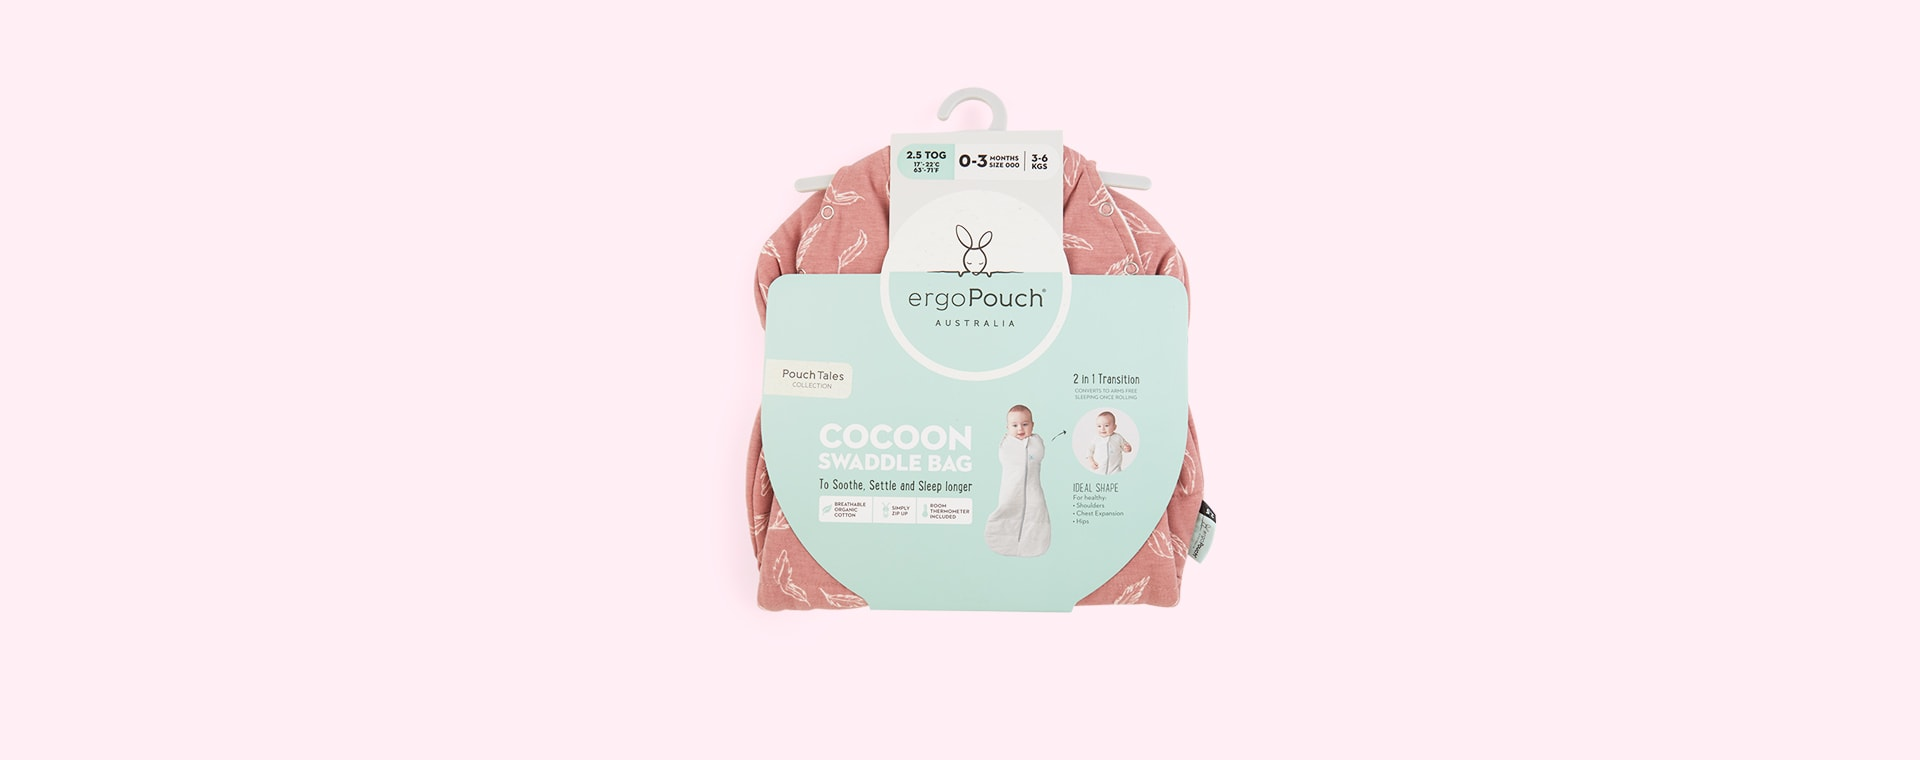 Quil Ergopouch Cocoon Swaddle Bag